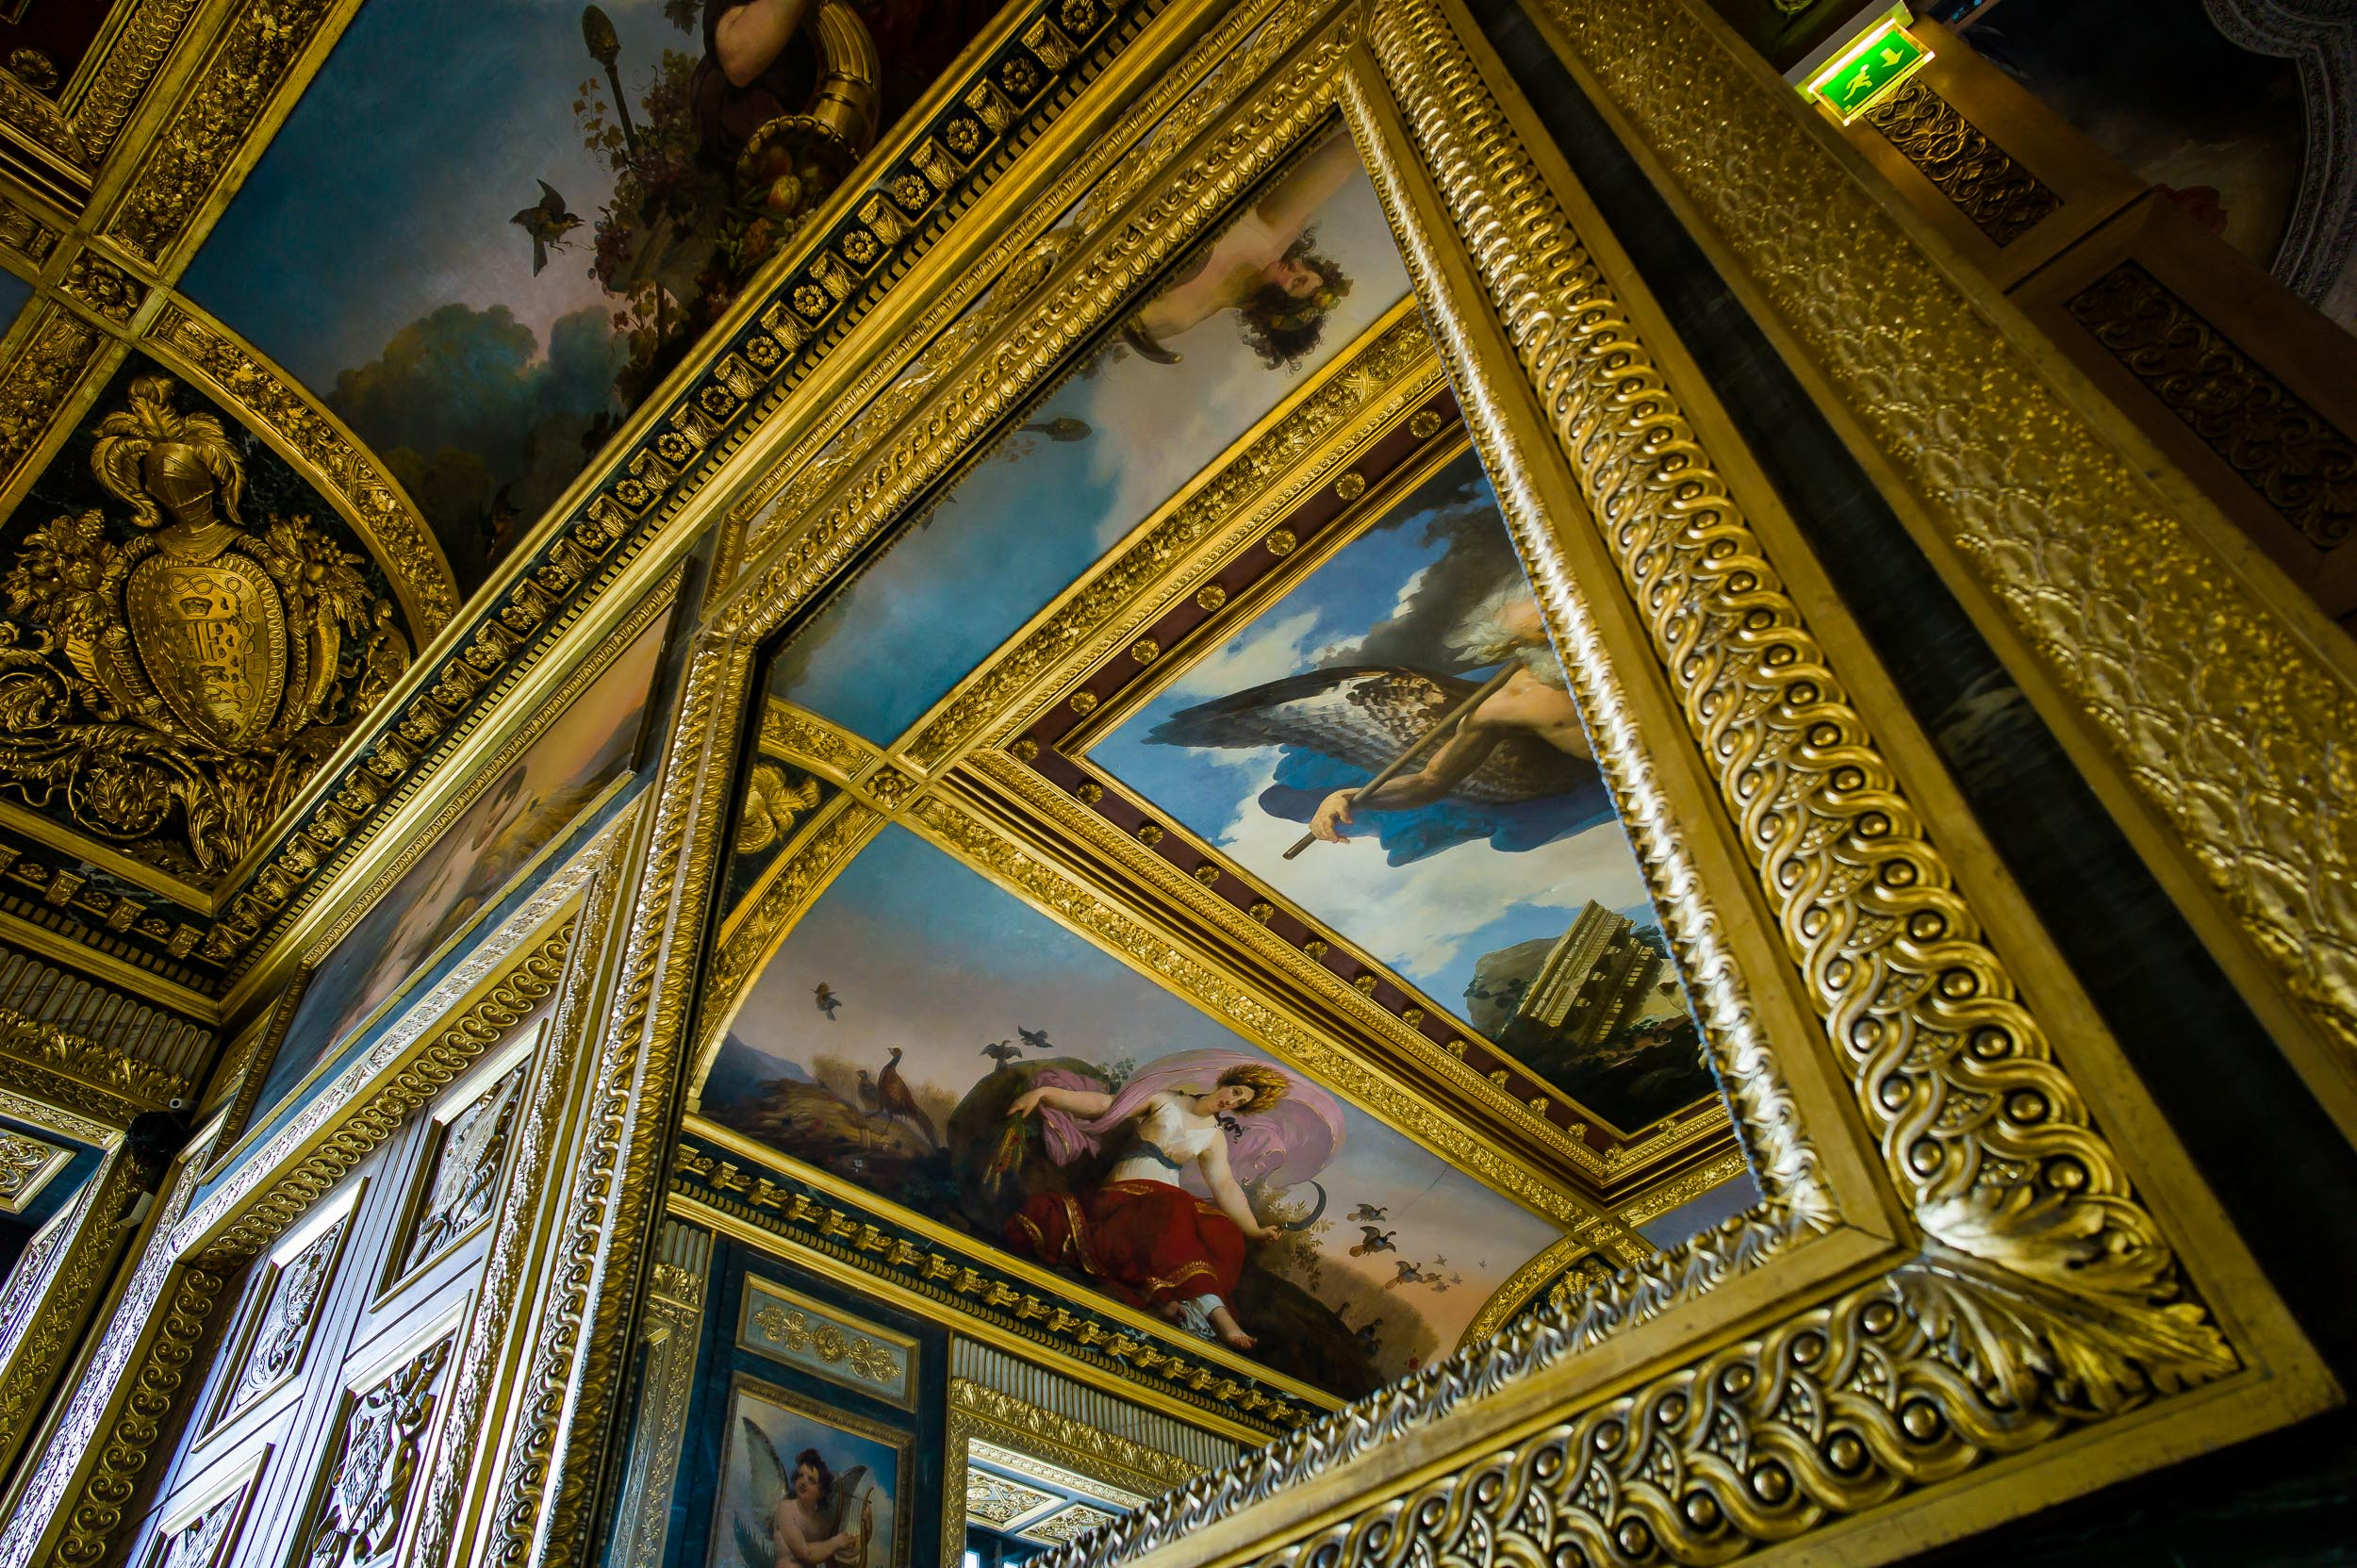 Artwork    reflected in    mirrors    at the    Louvre    in    Paris, France   .